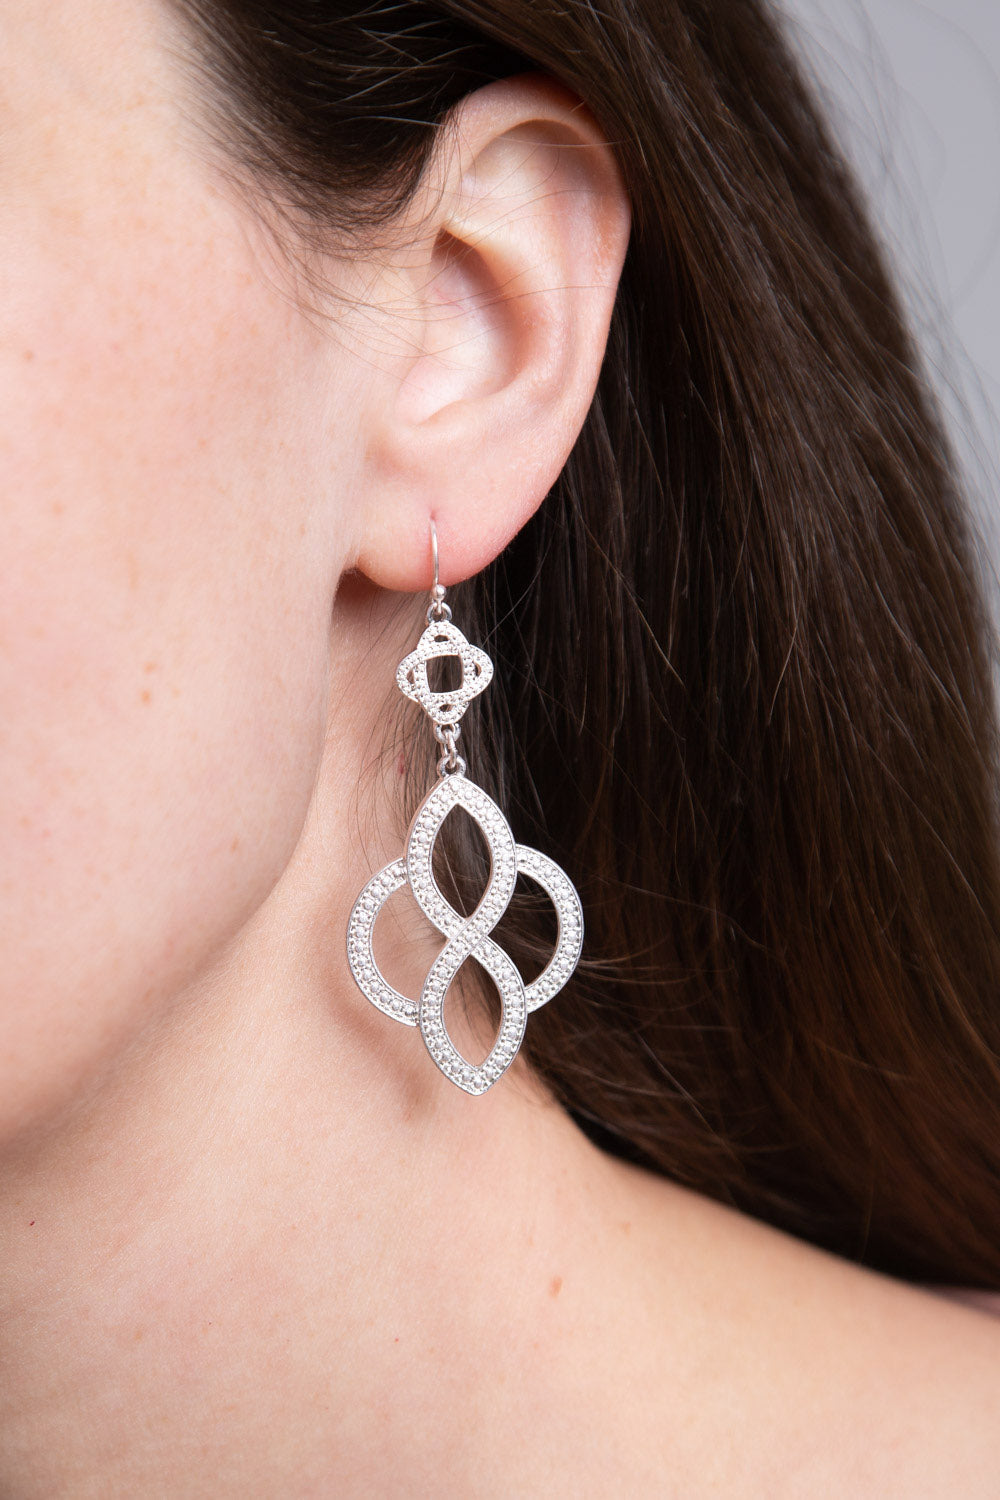 Type 2 Celtic Vibes Earrings